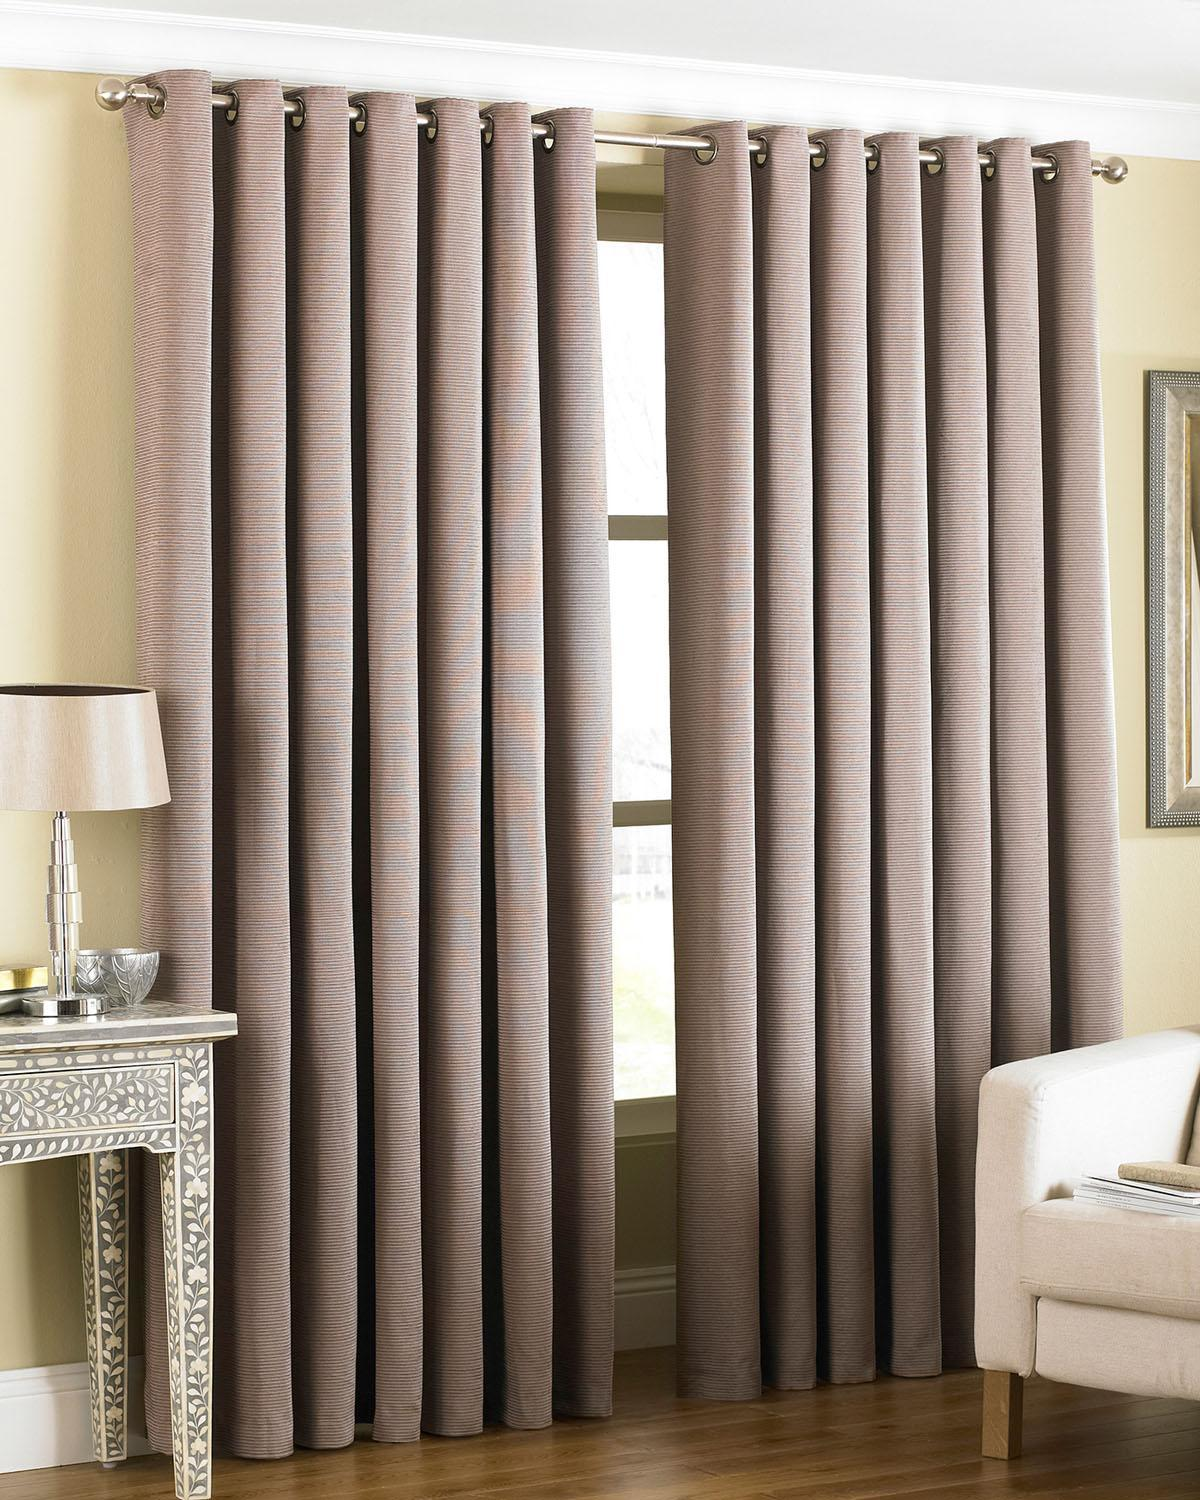 Riva Ready Made Curtains Amari Ready Made Eyelet Curtains Taupe Picture